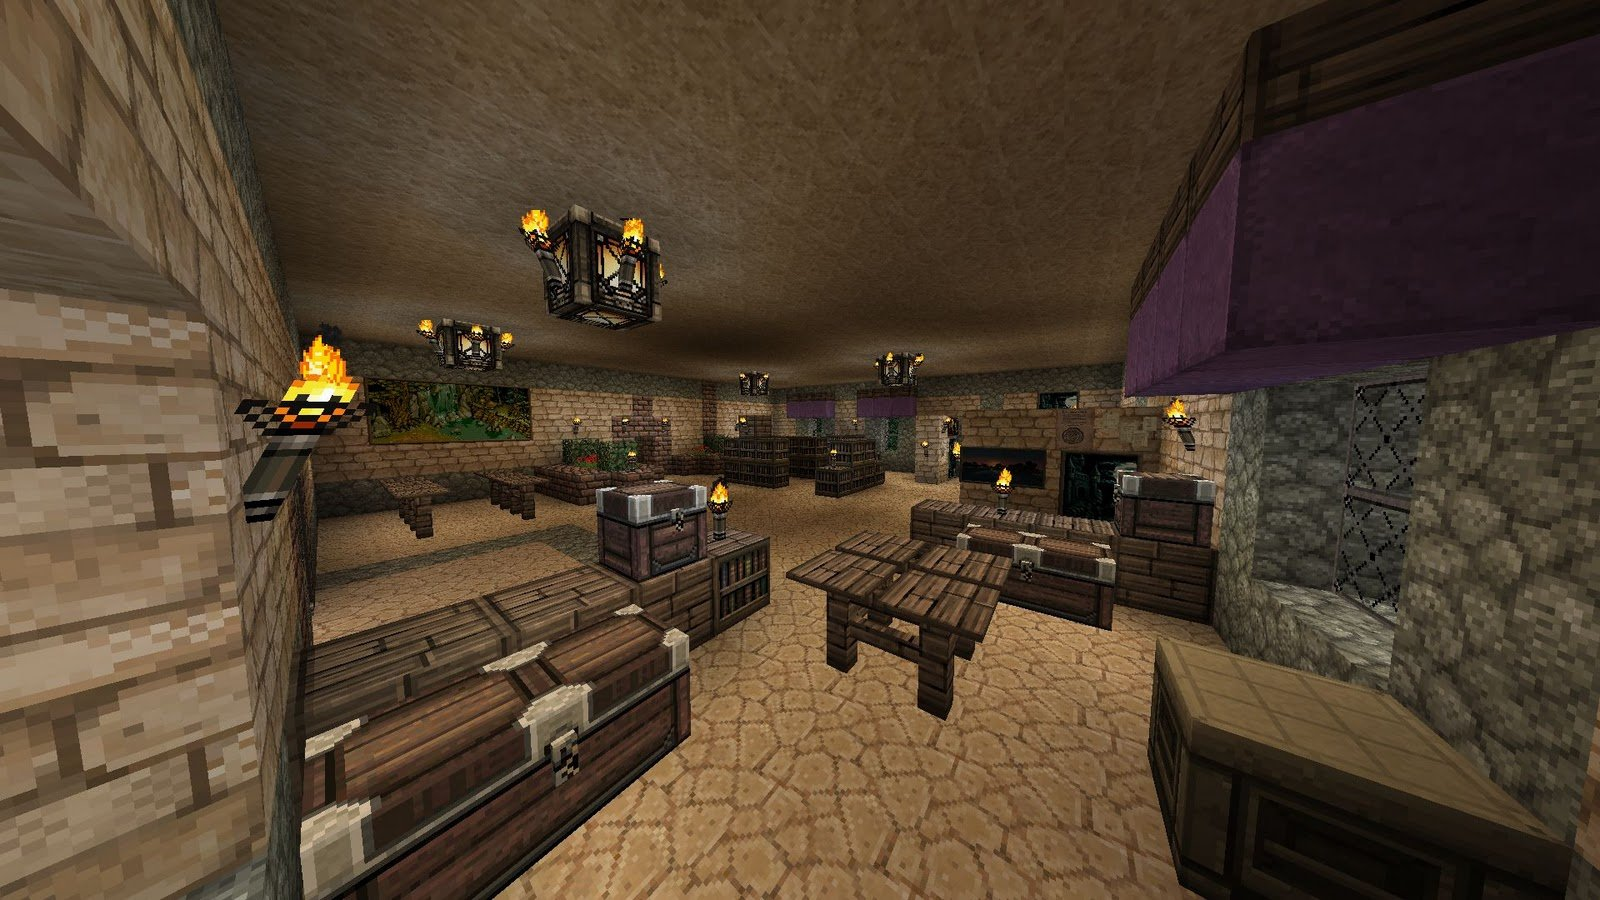 Minecraft Home Concepts For Business: The Concepts Are Made To Be Damaged